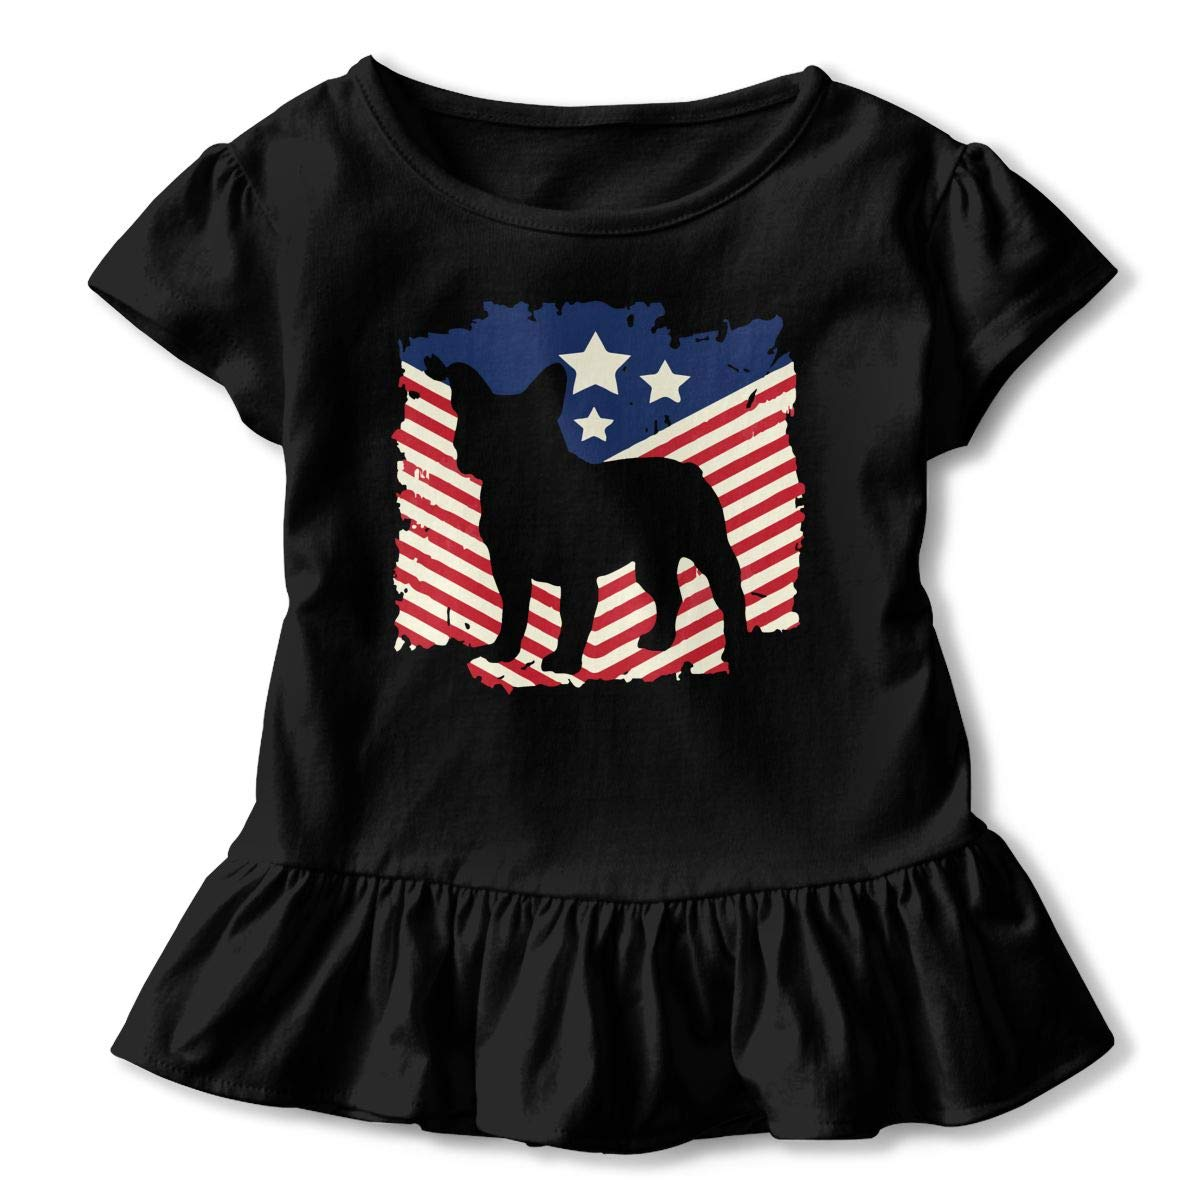 2-6 Years Vfbggg-Shirt Patriotic French Bulldog American Flag Baby Girls Short Sleeve Ruffle Tee Cotton Kids T Shirts